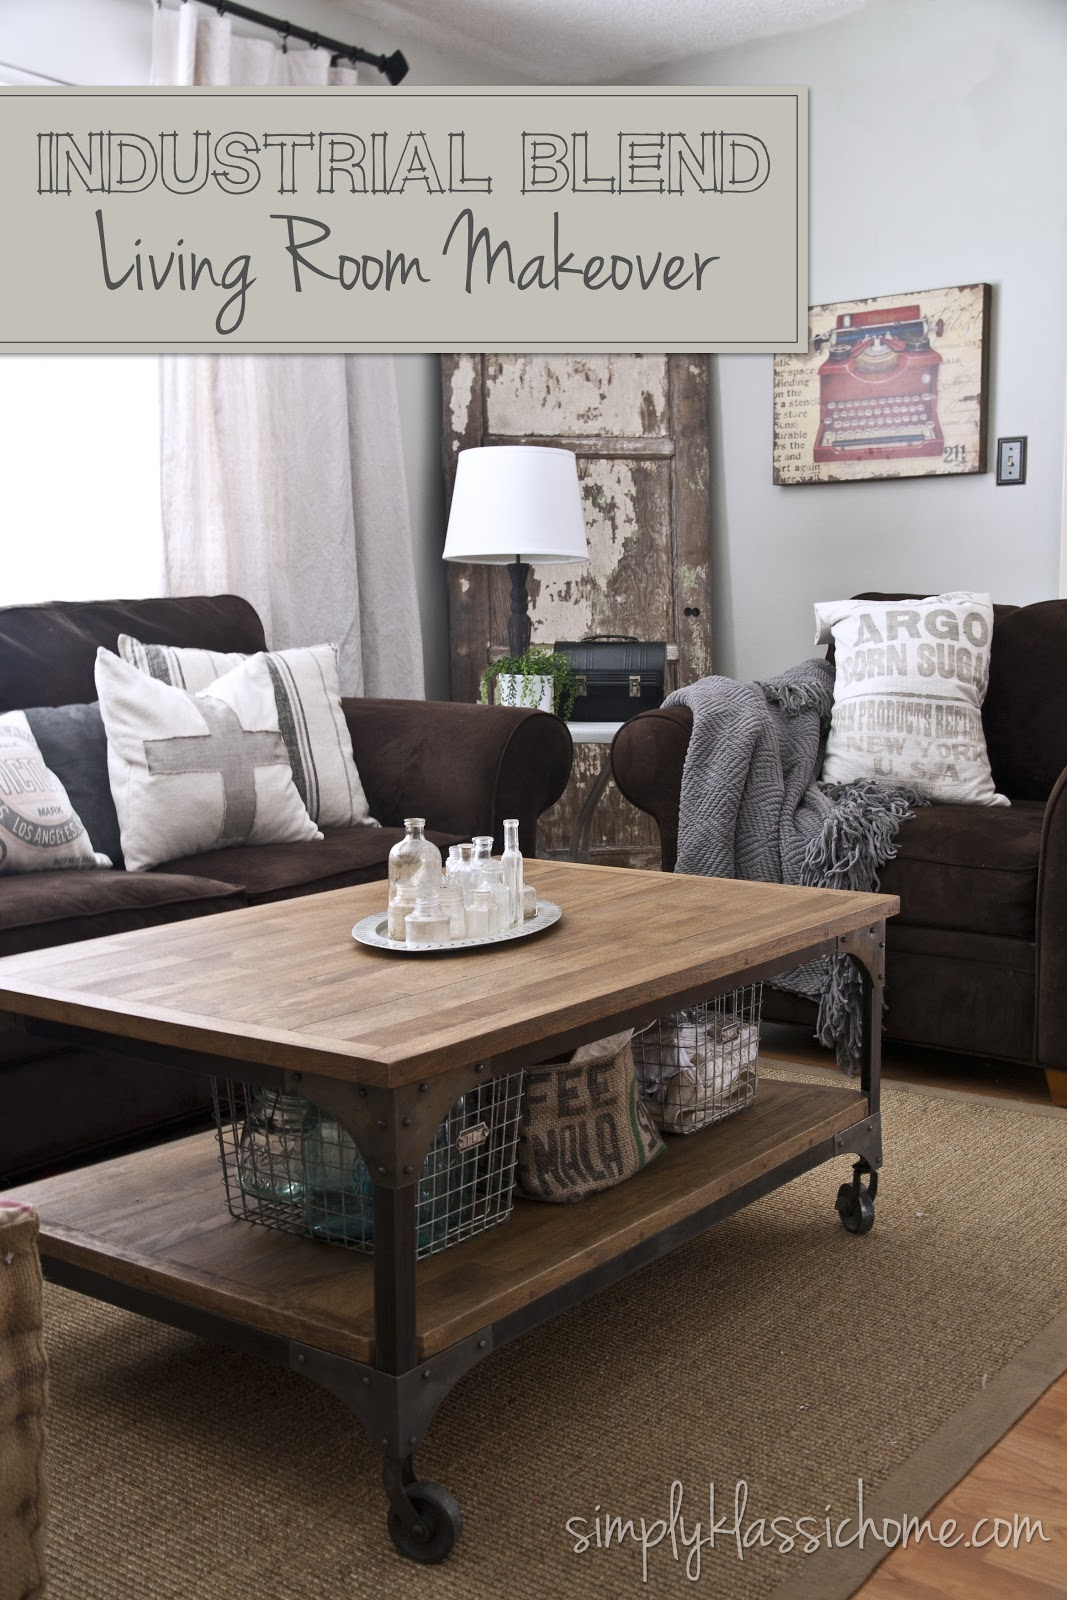 Industrial blend living room makeover reveal yellow for Living room makeover